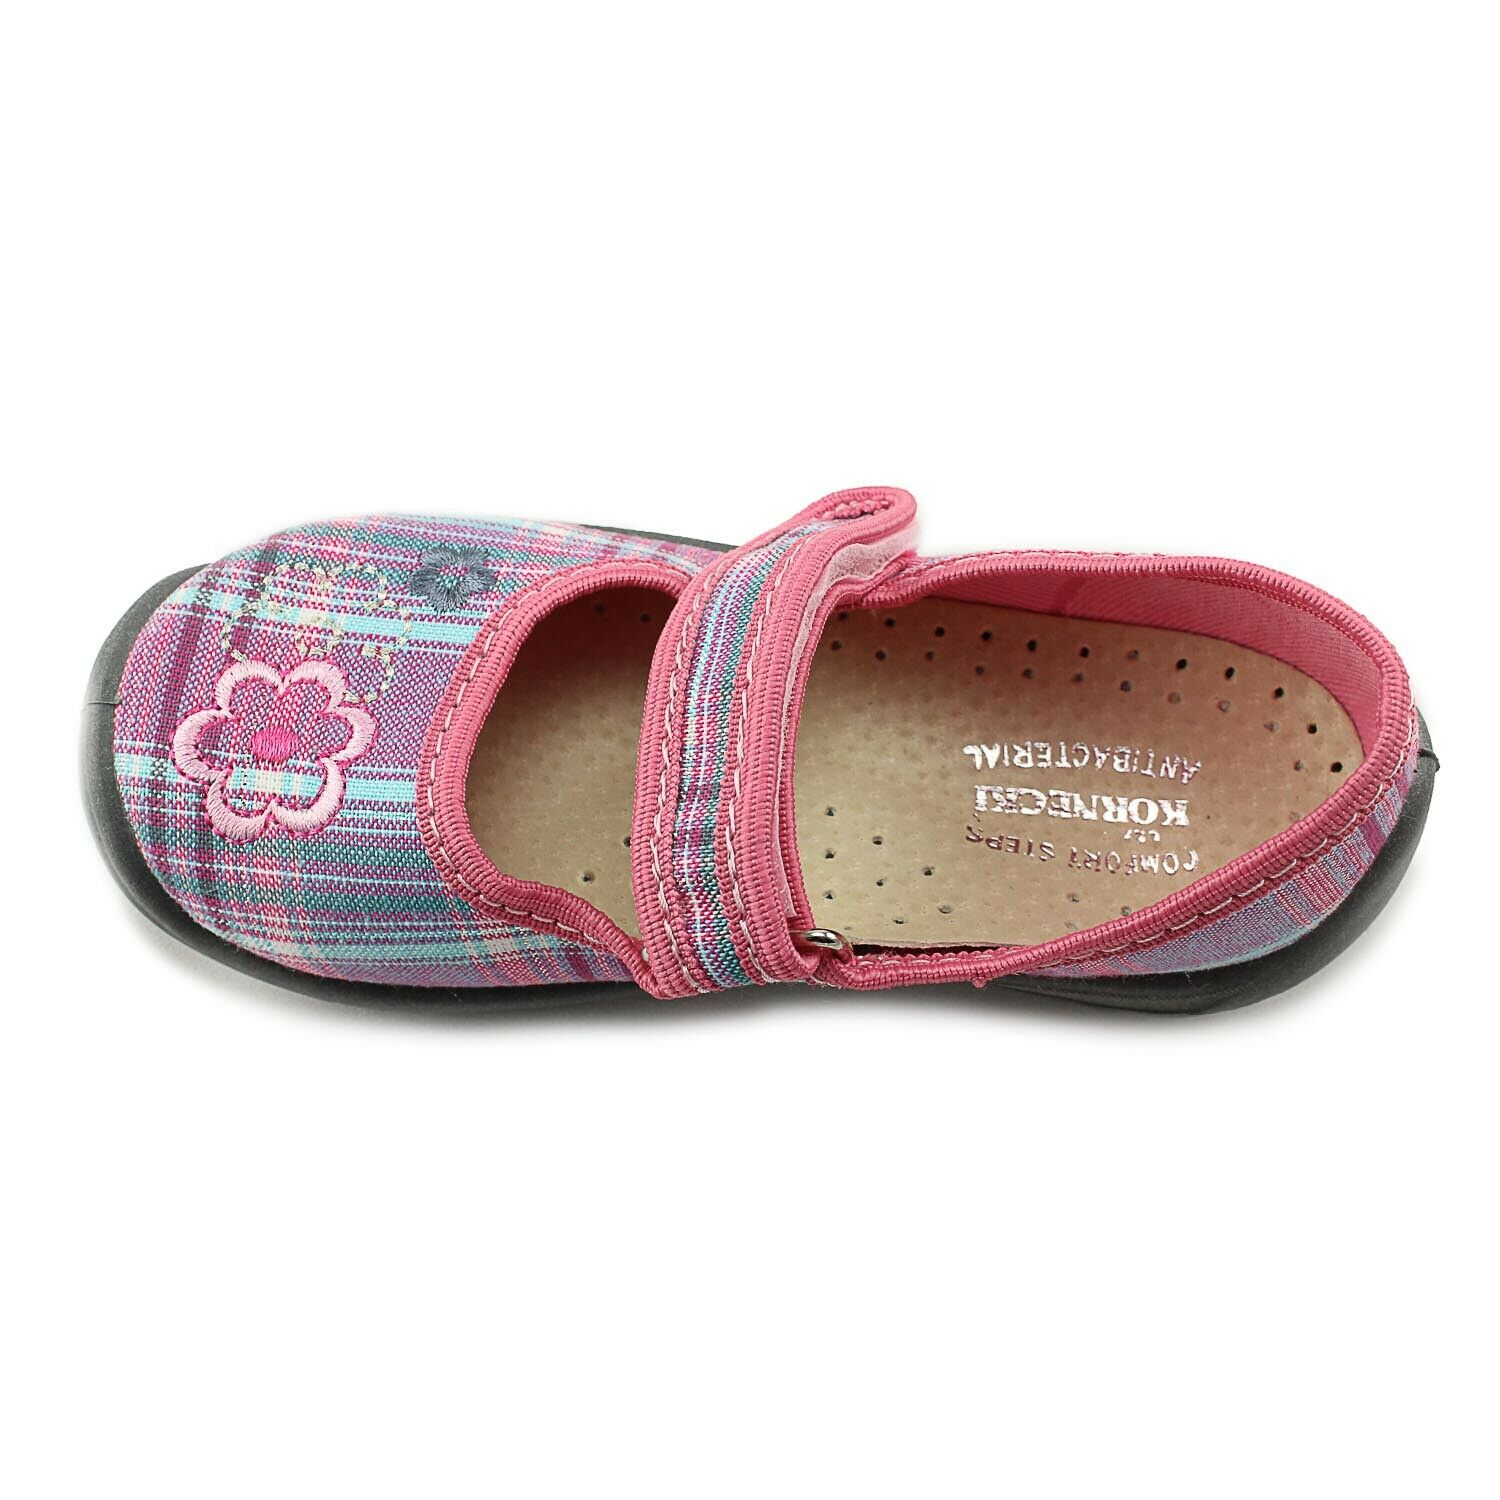 Kornecki Girls Mary Jane Canvas Shoes with Leather Innersole Made in Poland